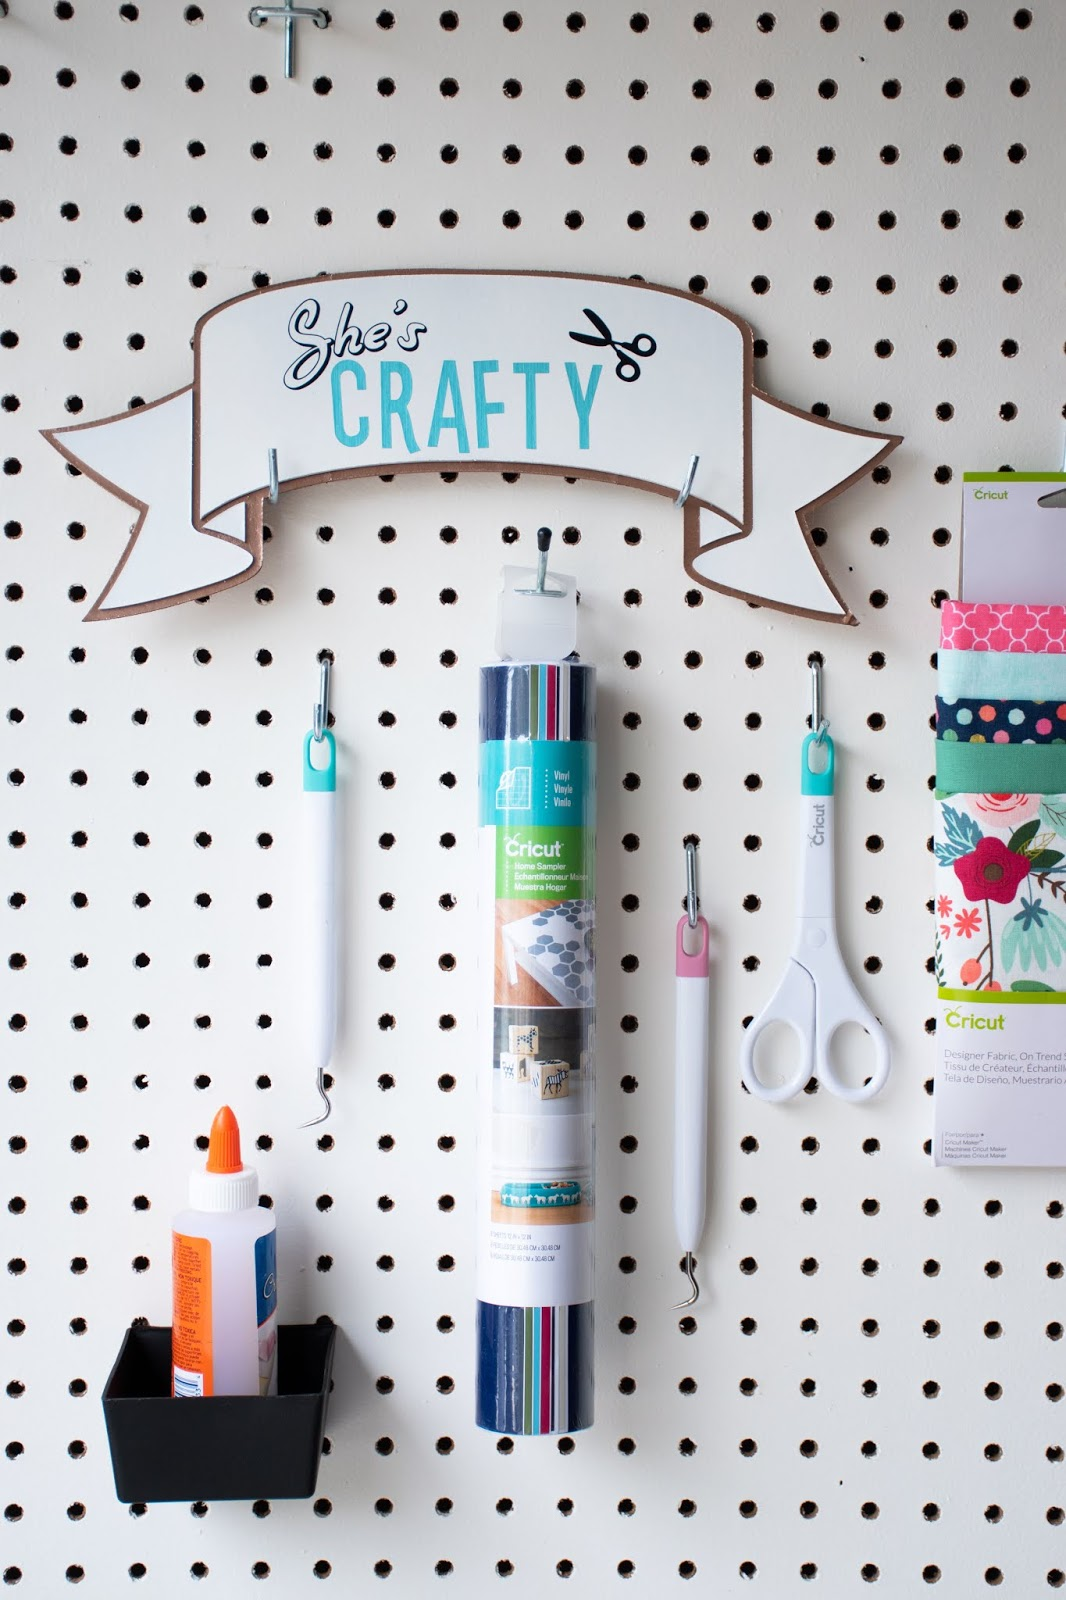 She's Crafty DIY Chipboard Sign on Craft Room Pegboard